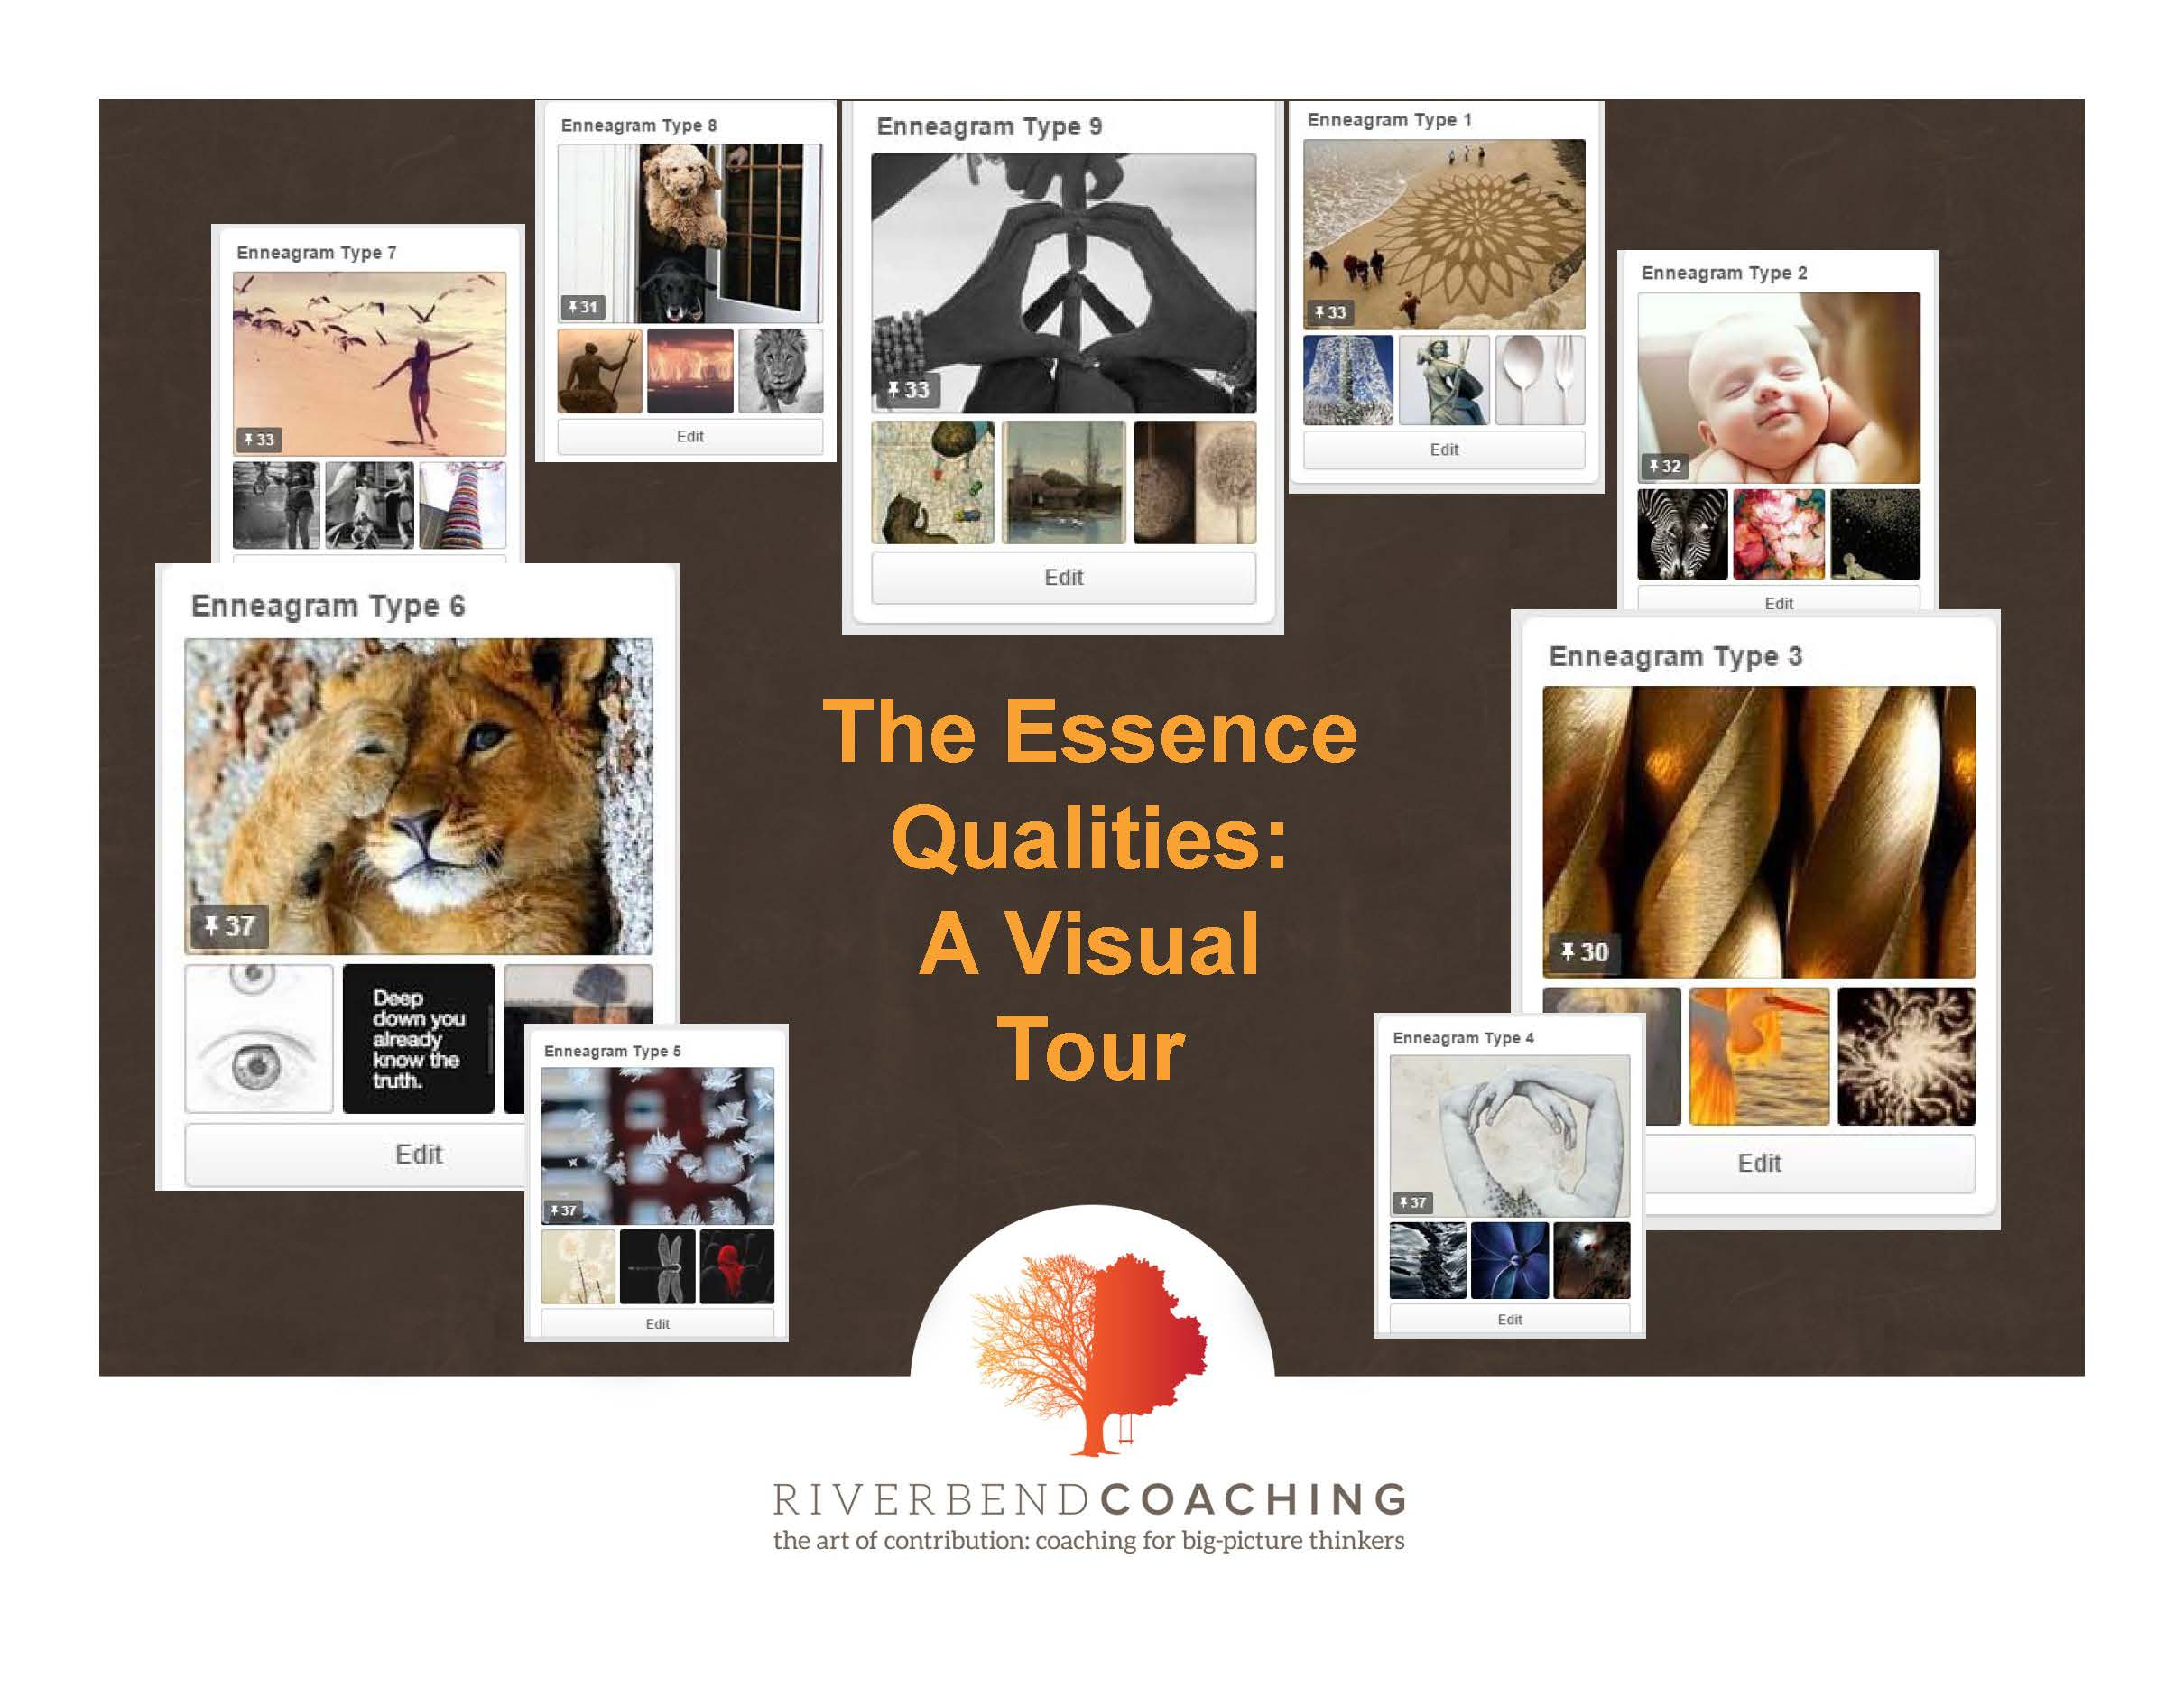 The Essence Qualities.A Visual Tour